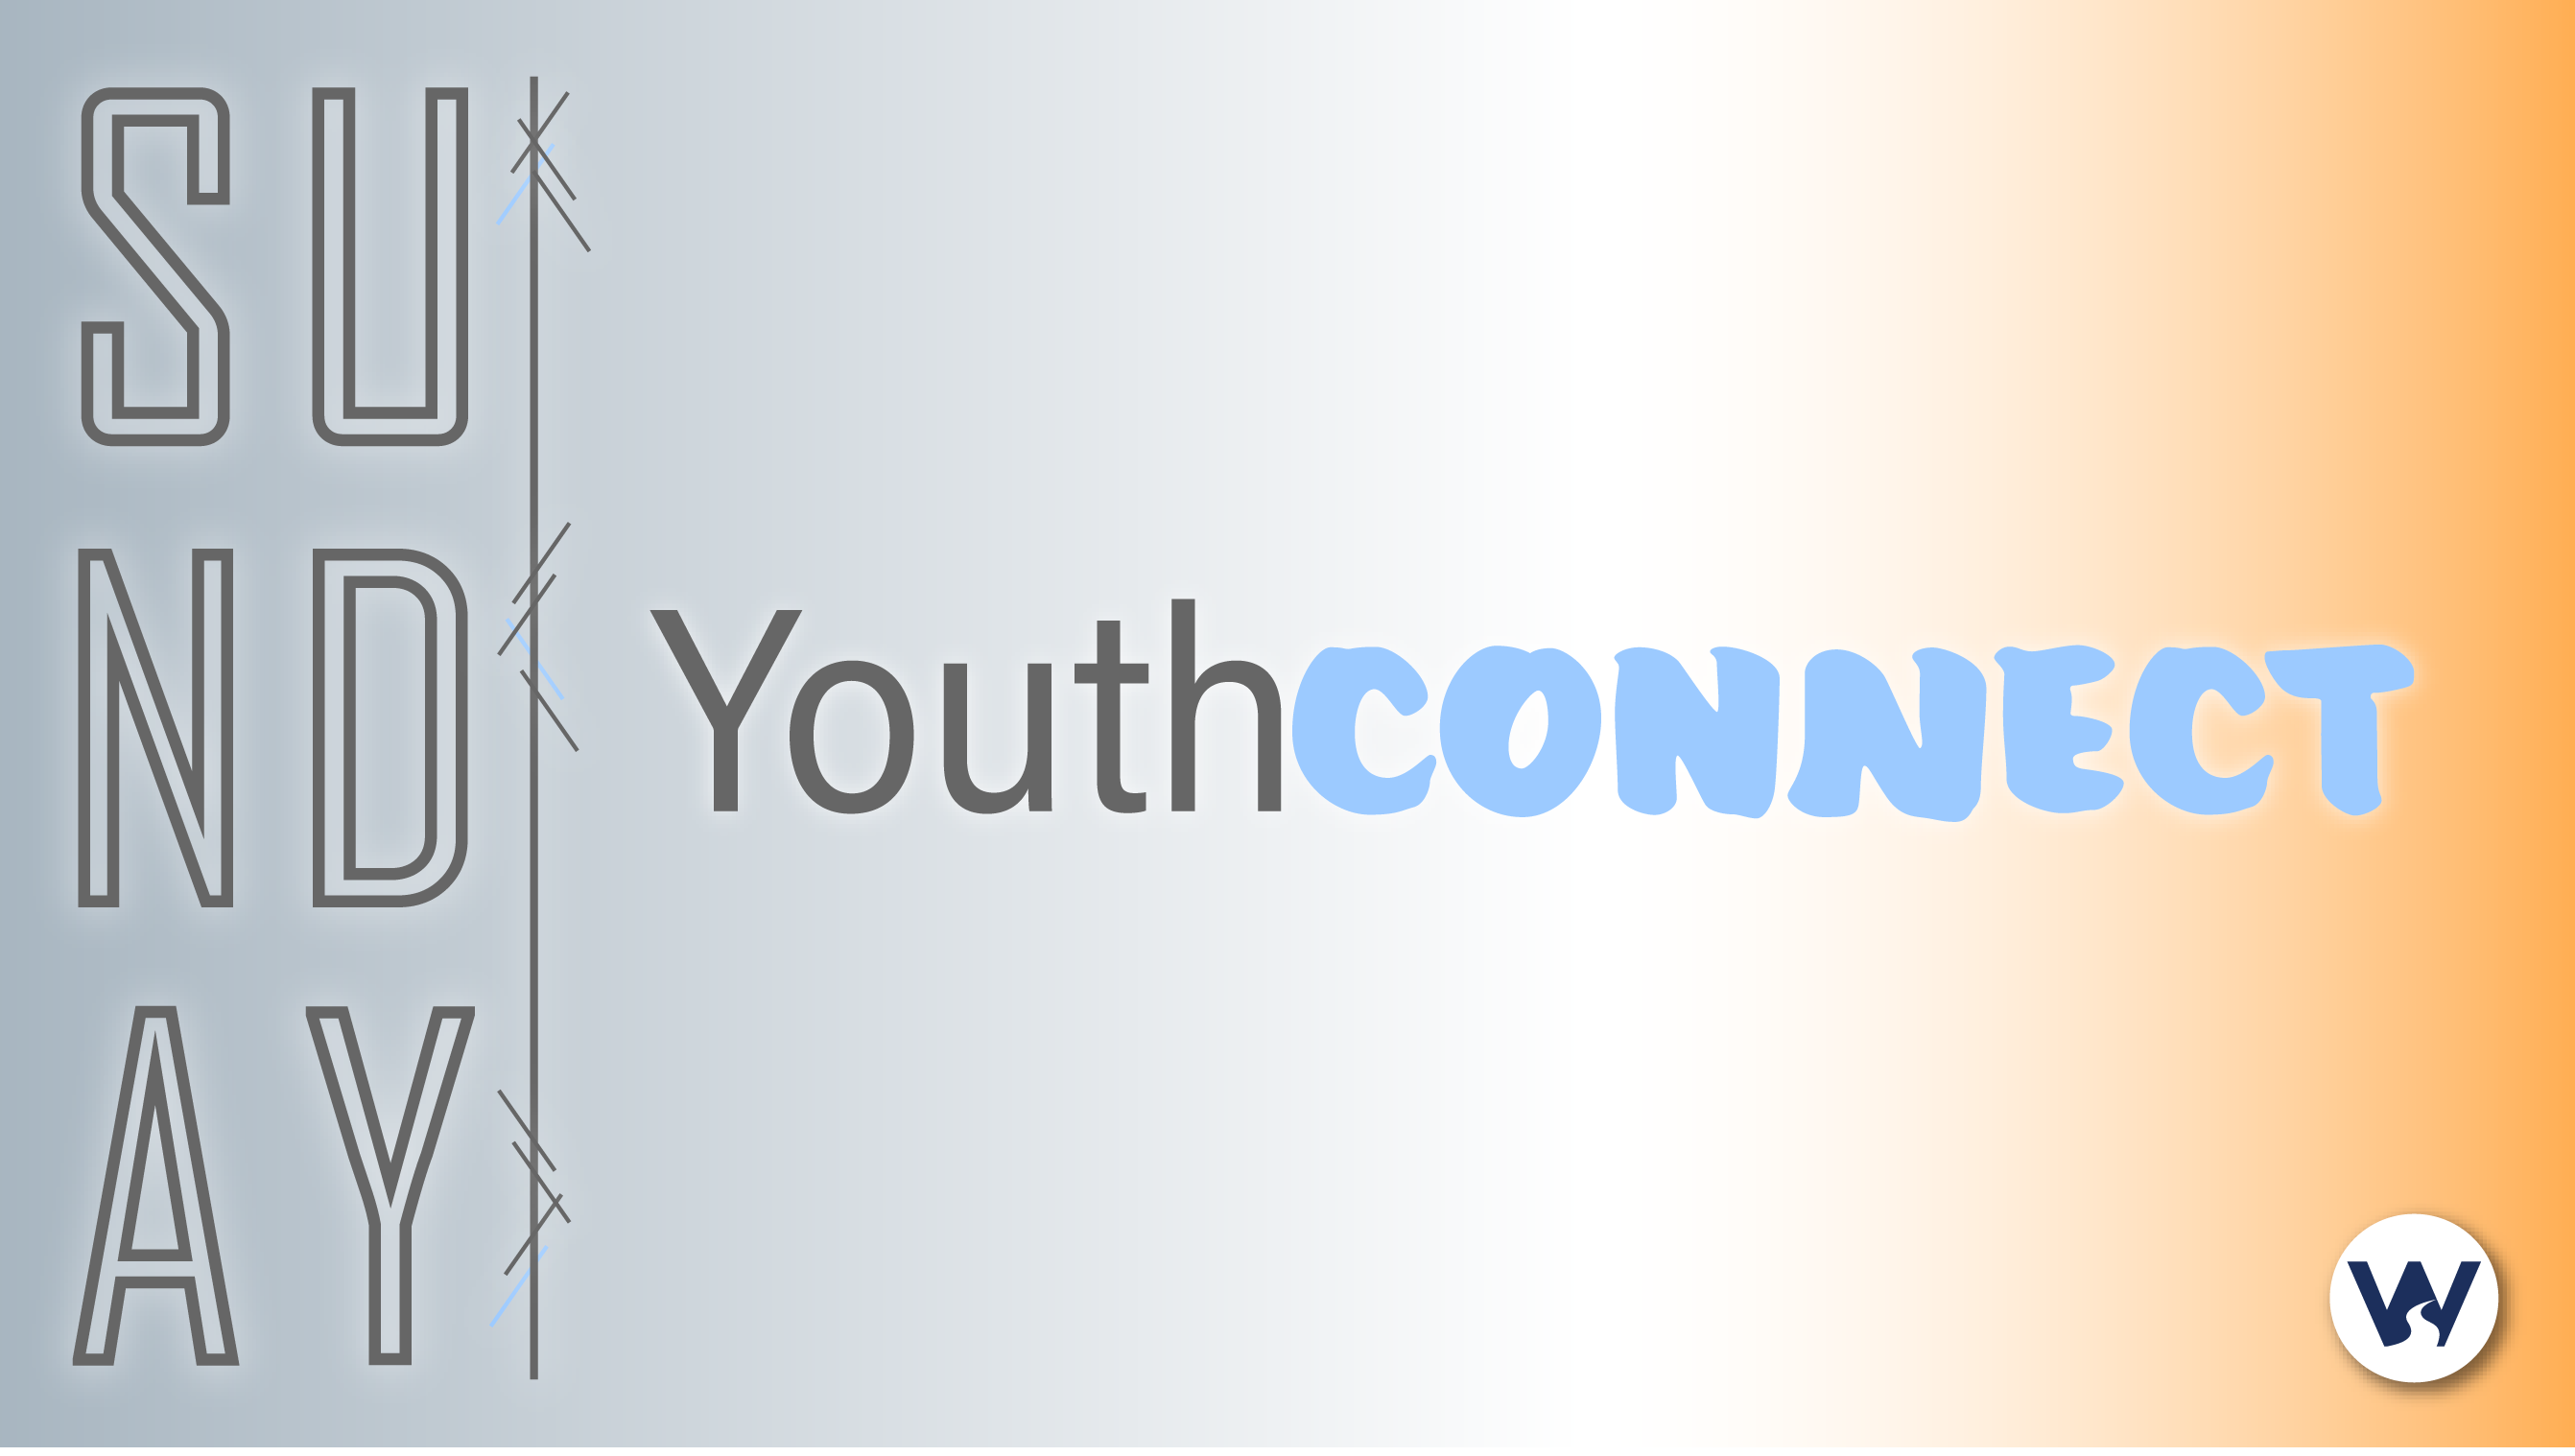 http://www.wieuca.org/uploads/YouthConnectSunday-OM-01.png